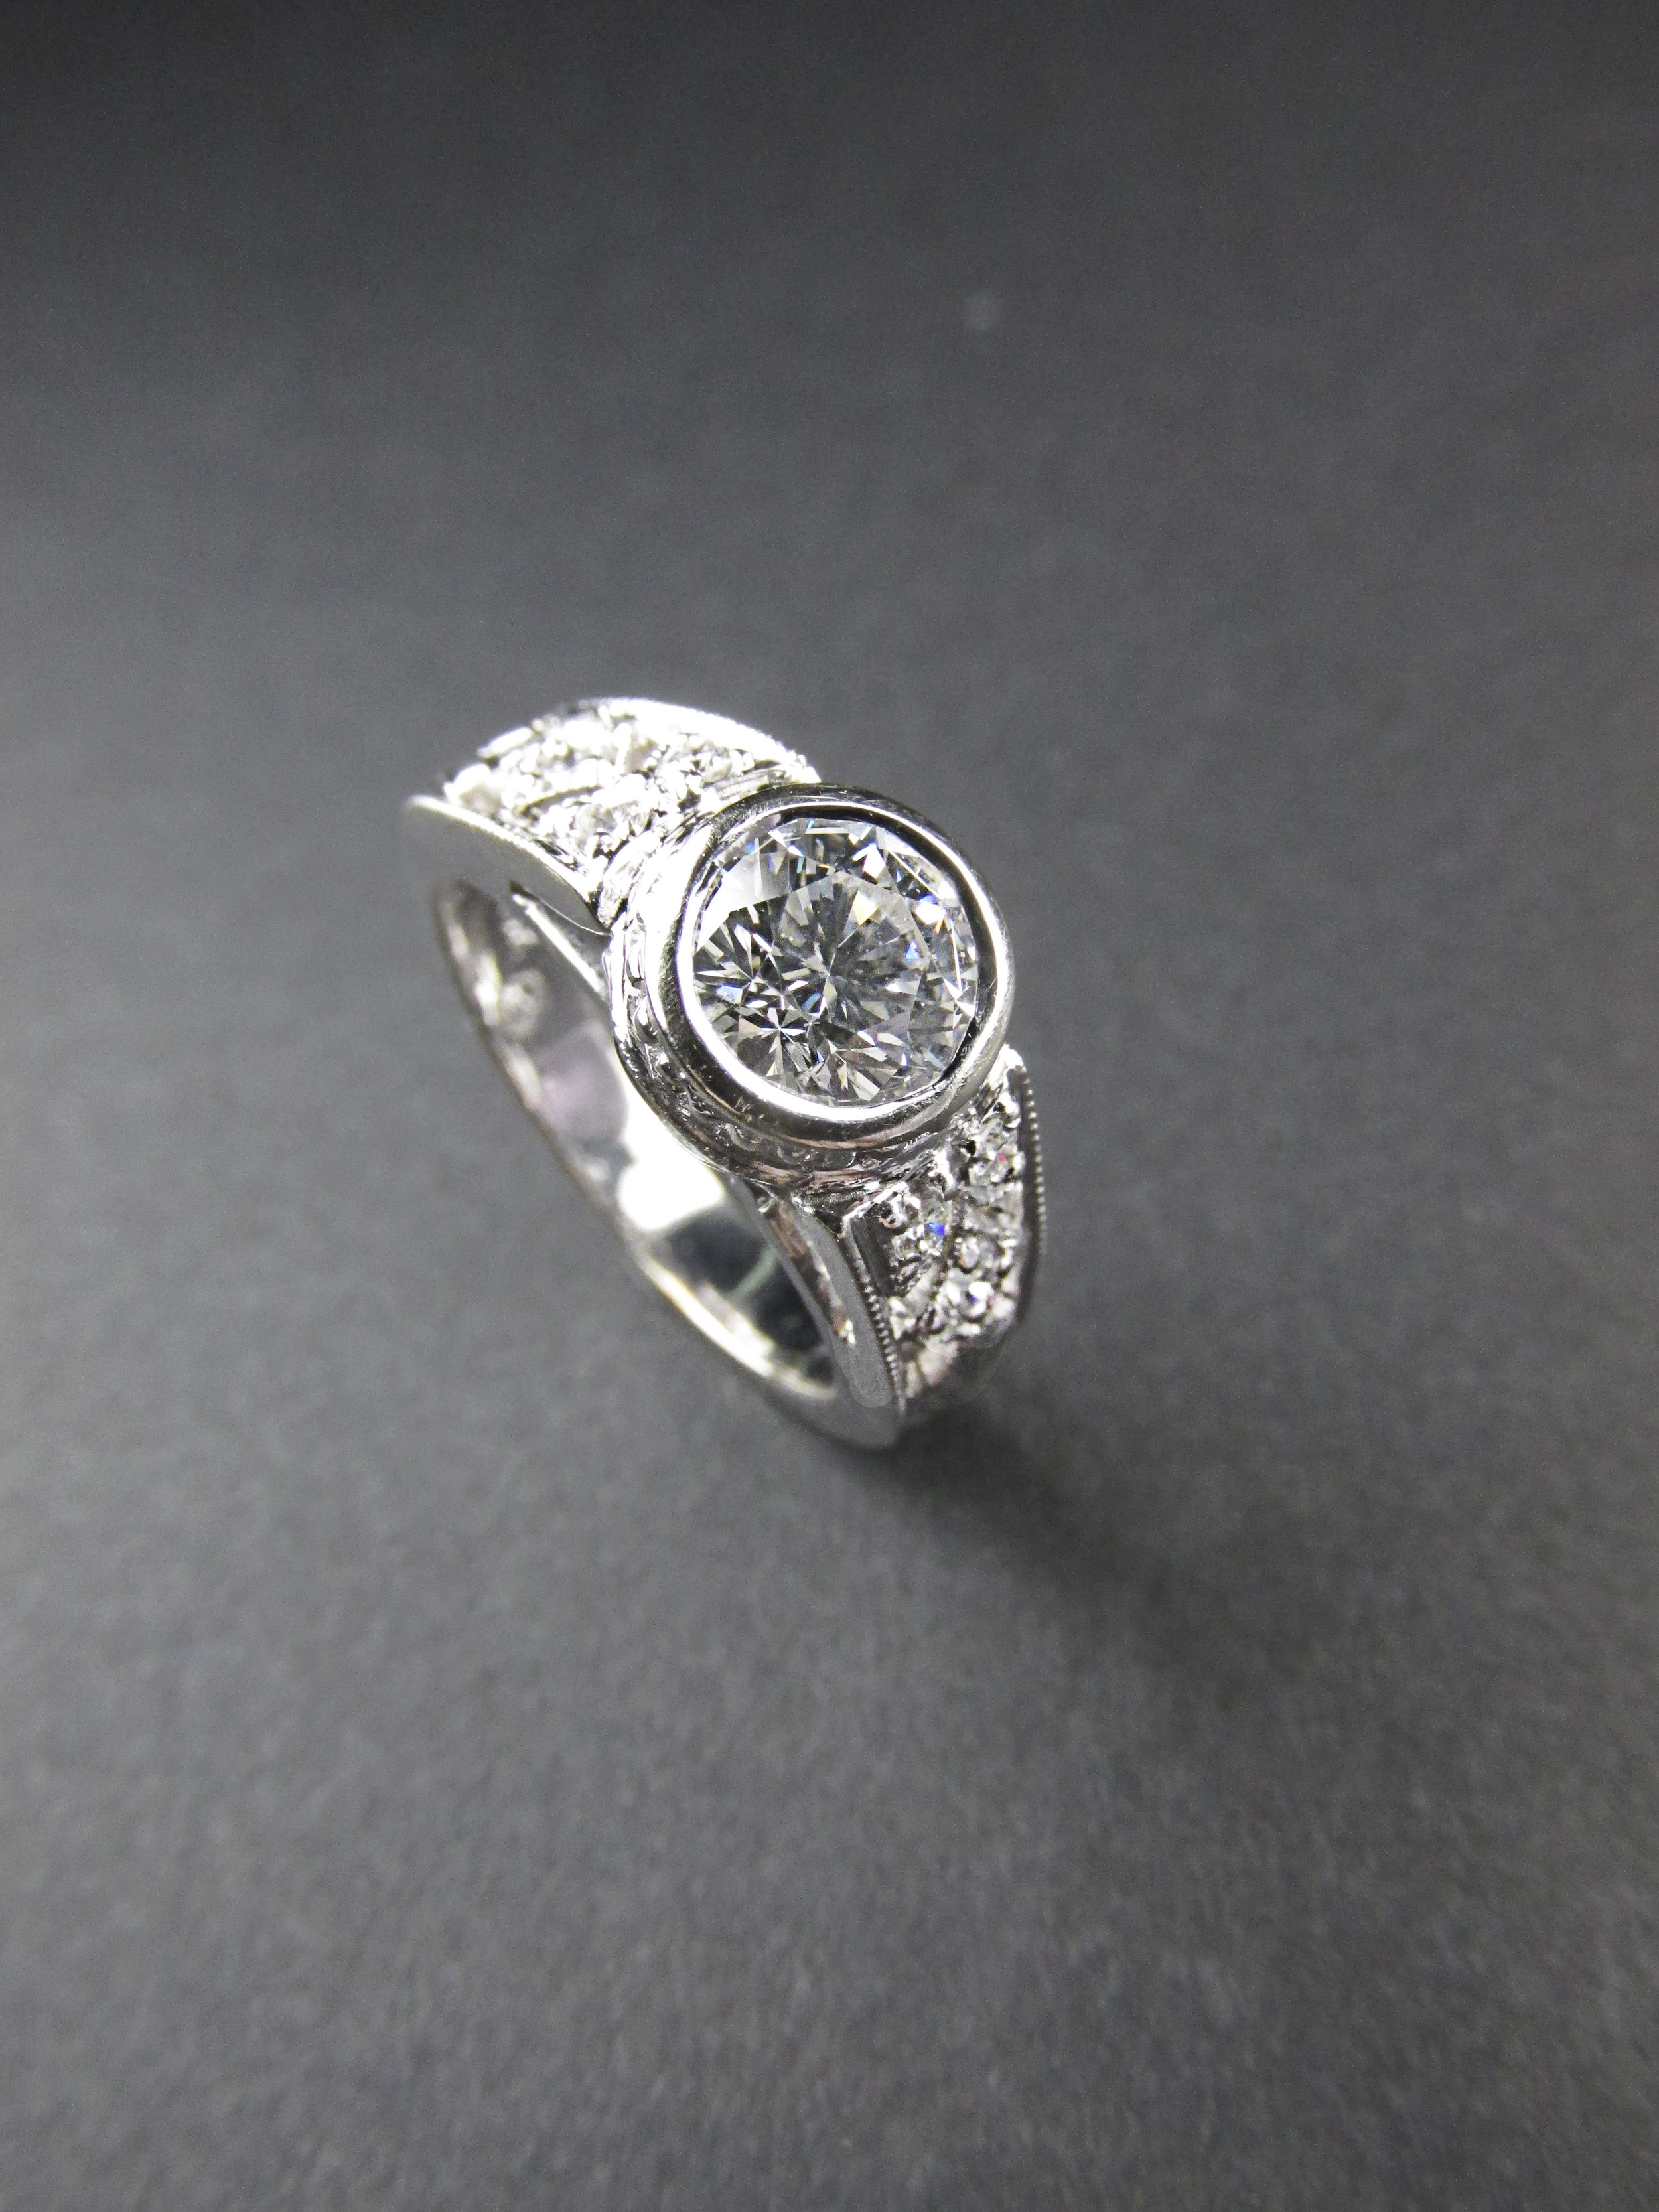 Bezel Set Engagement Ring with Engraving